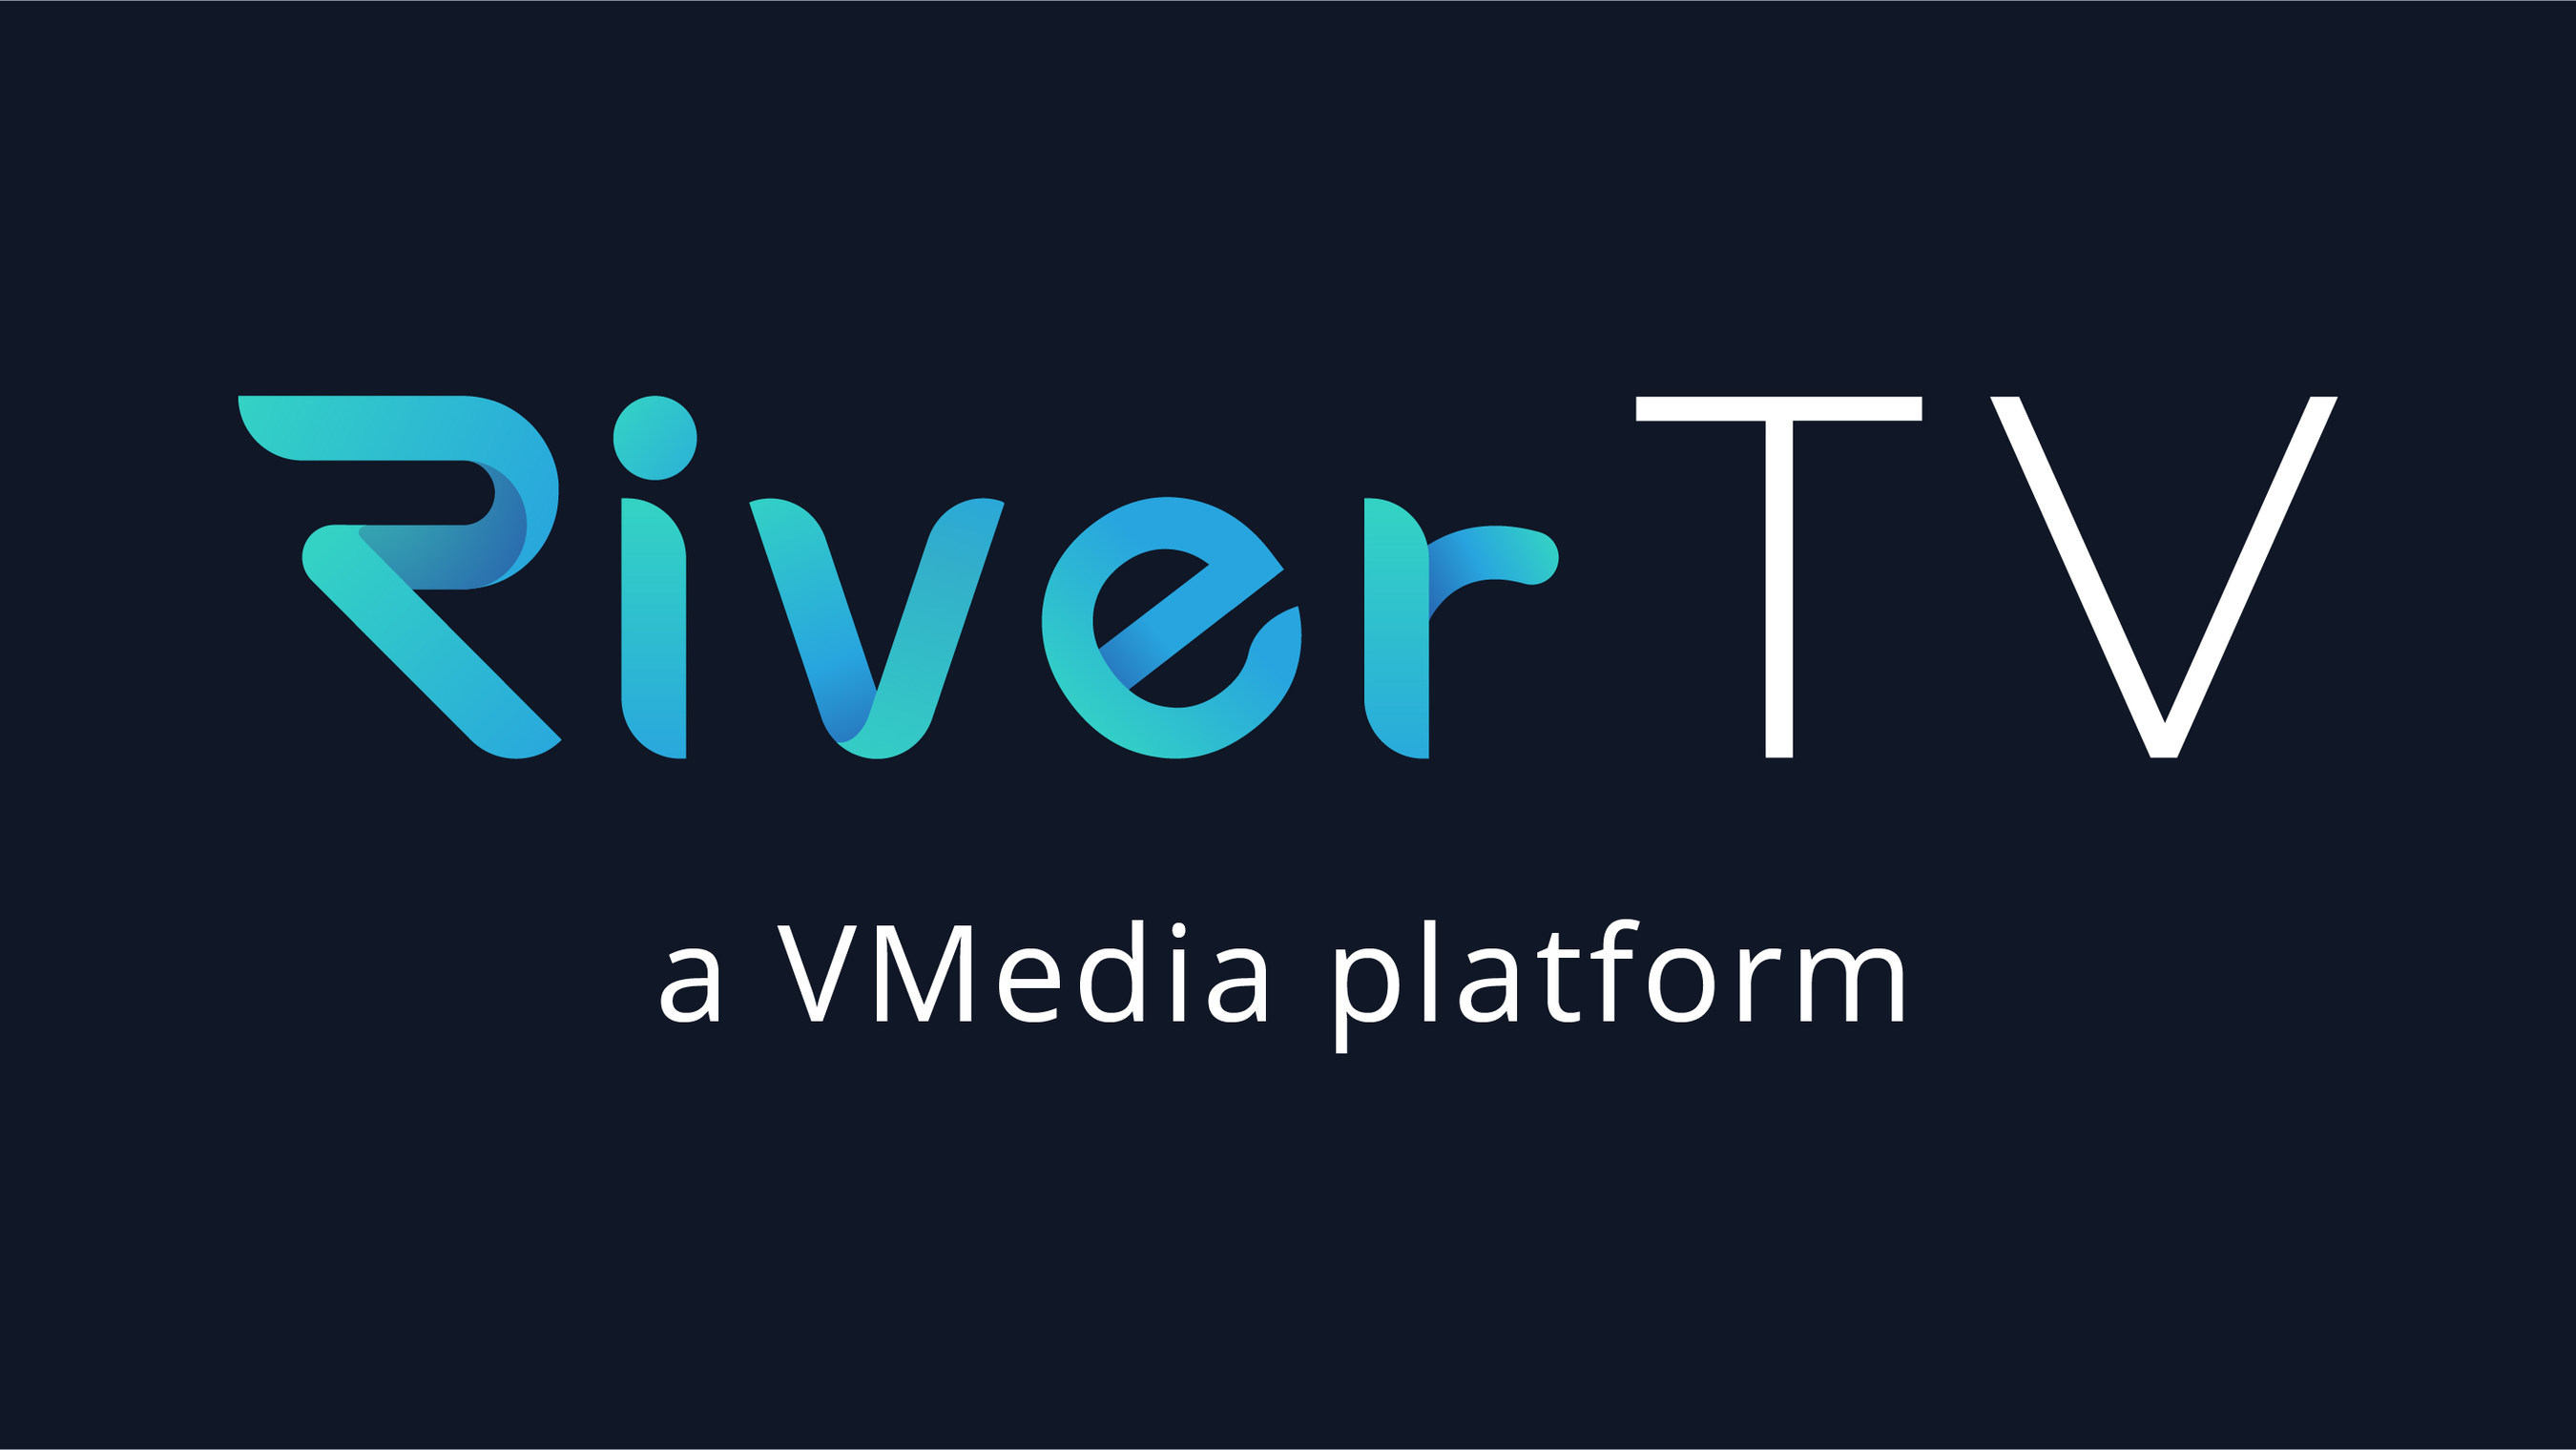 Vmedia Launches Rivertv Canada S First Live And On Demand Streaming Tv Platform